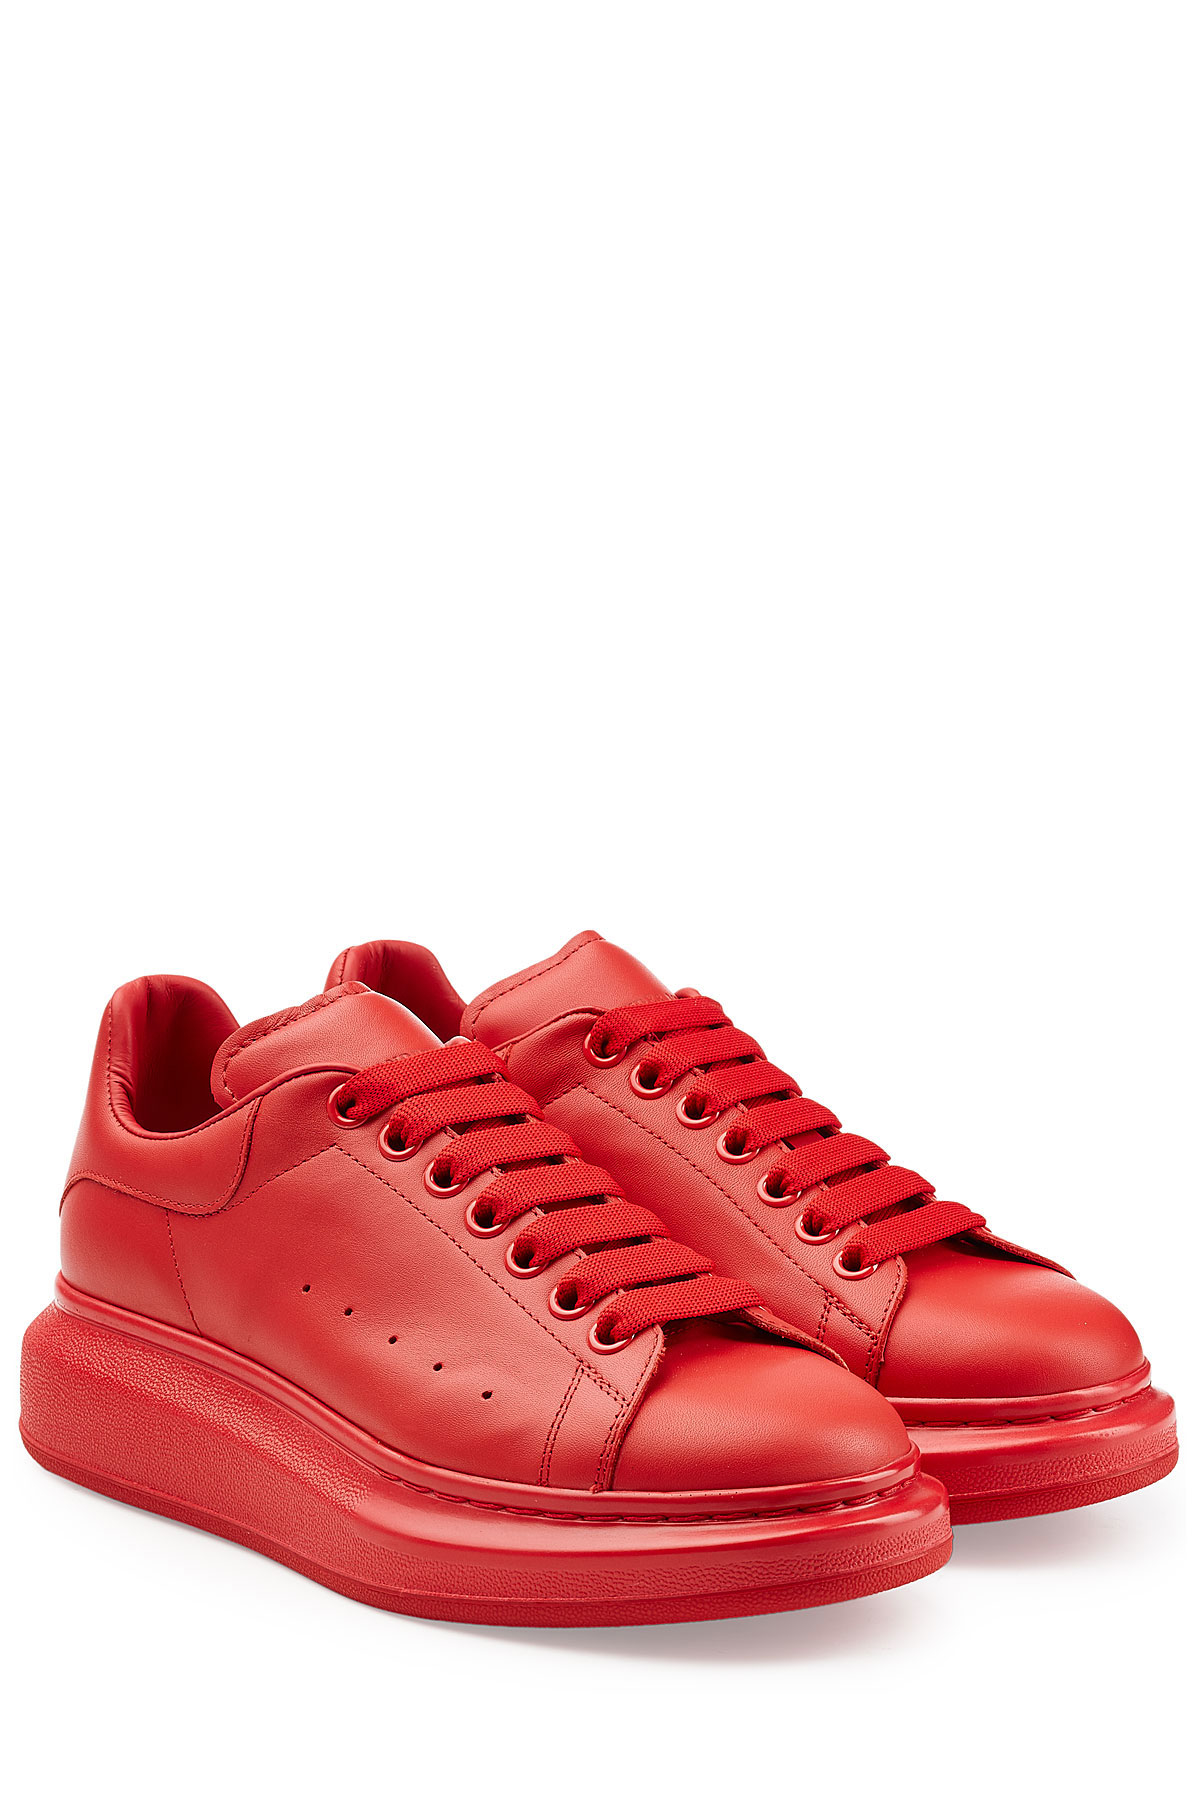 Alexander Mcqueen Leather Sneakers Red In Red For Men Lyst